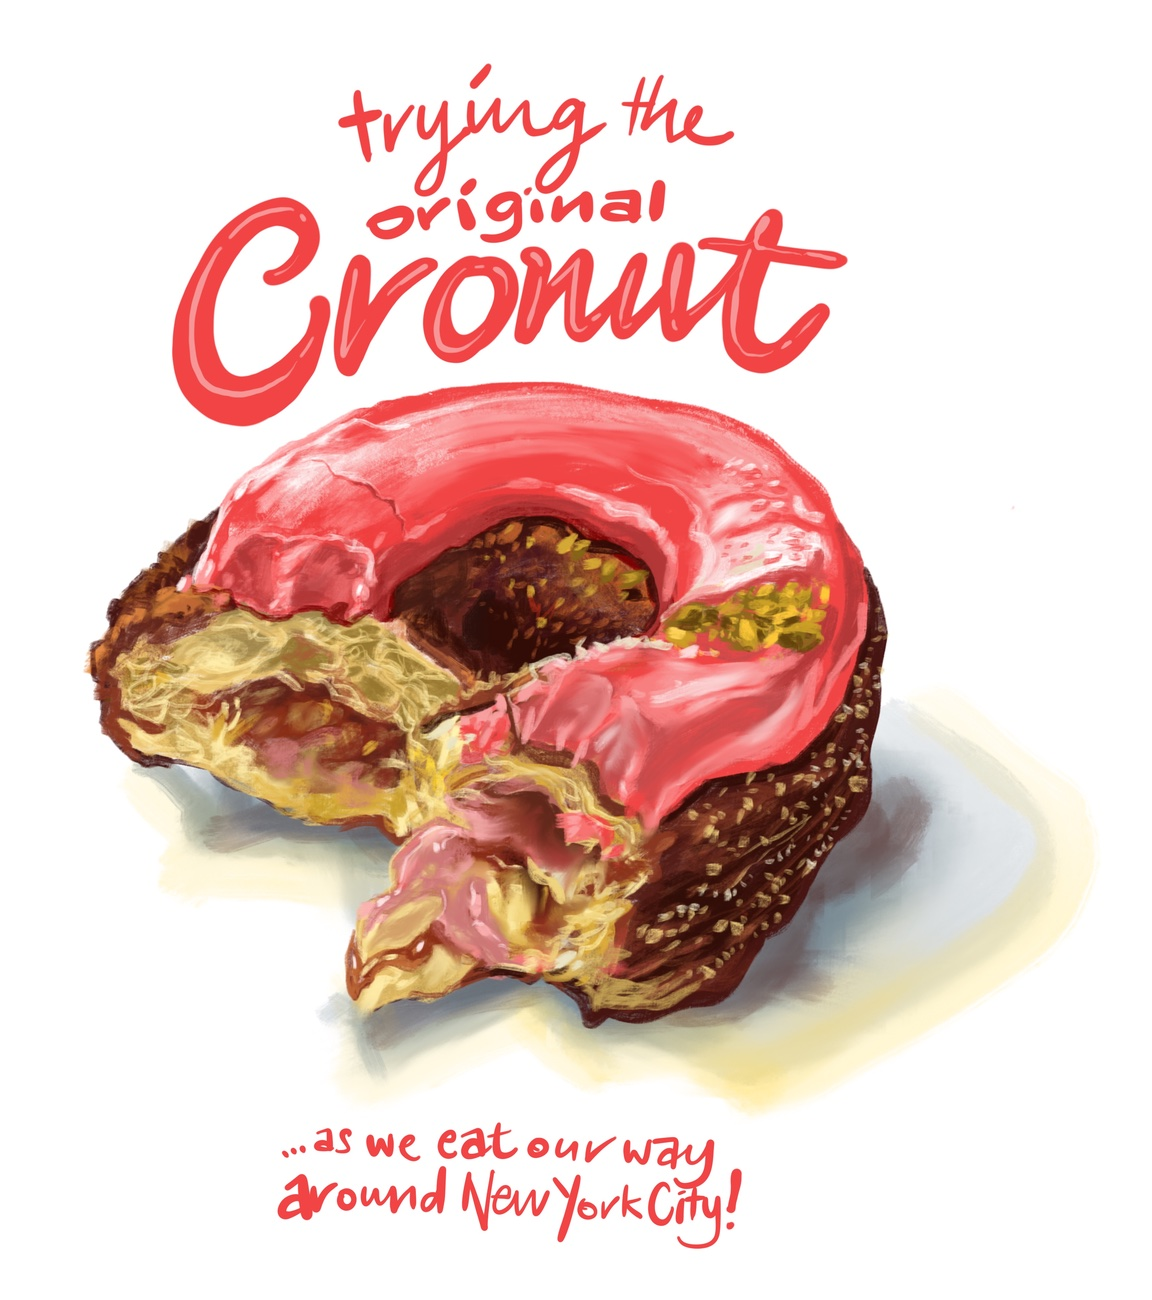 2018-NYC-10-Cronut_3K_Sketcherman.jpg